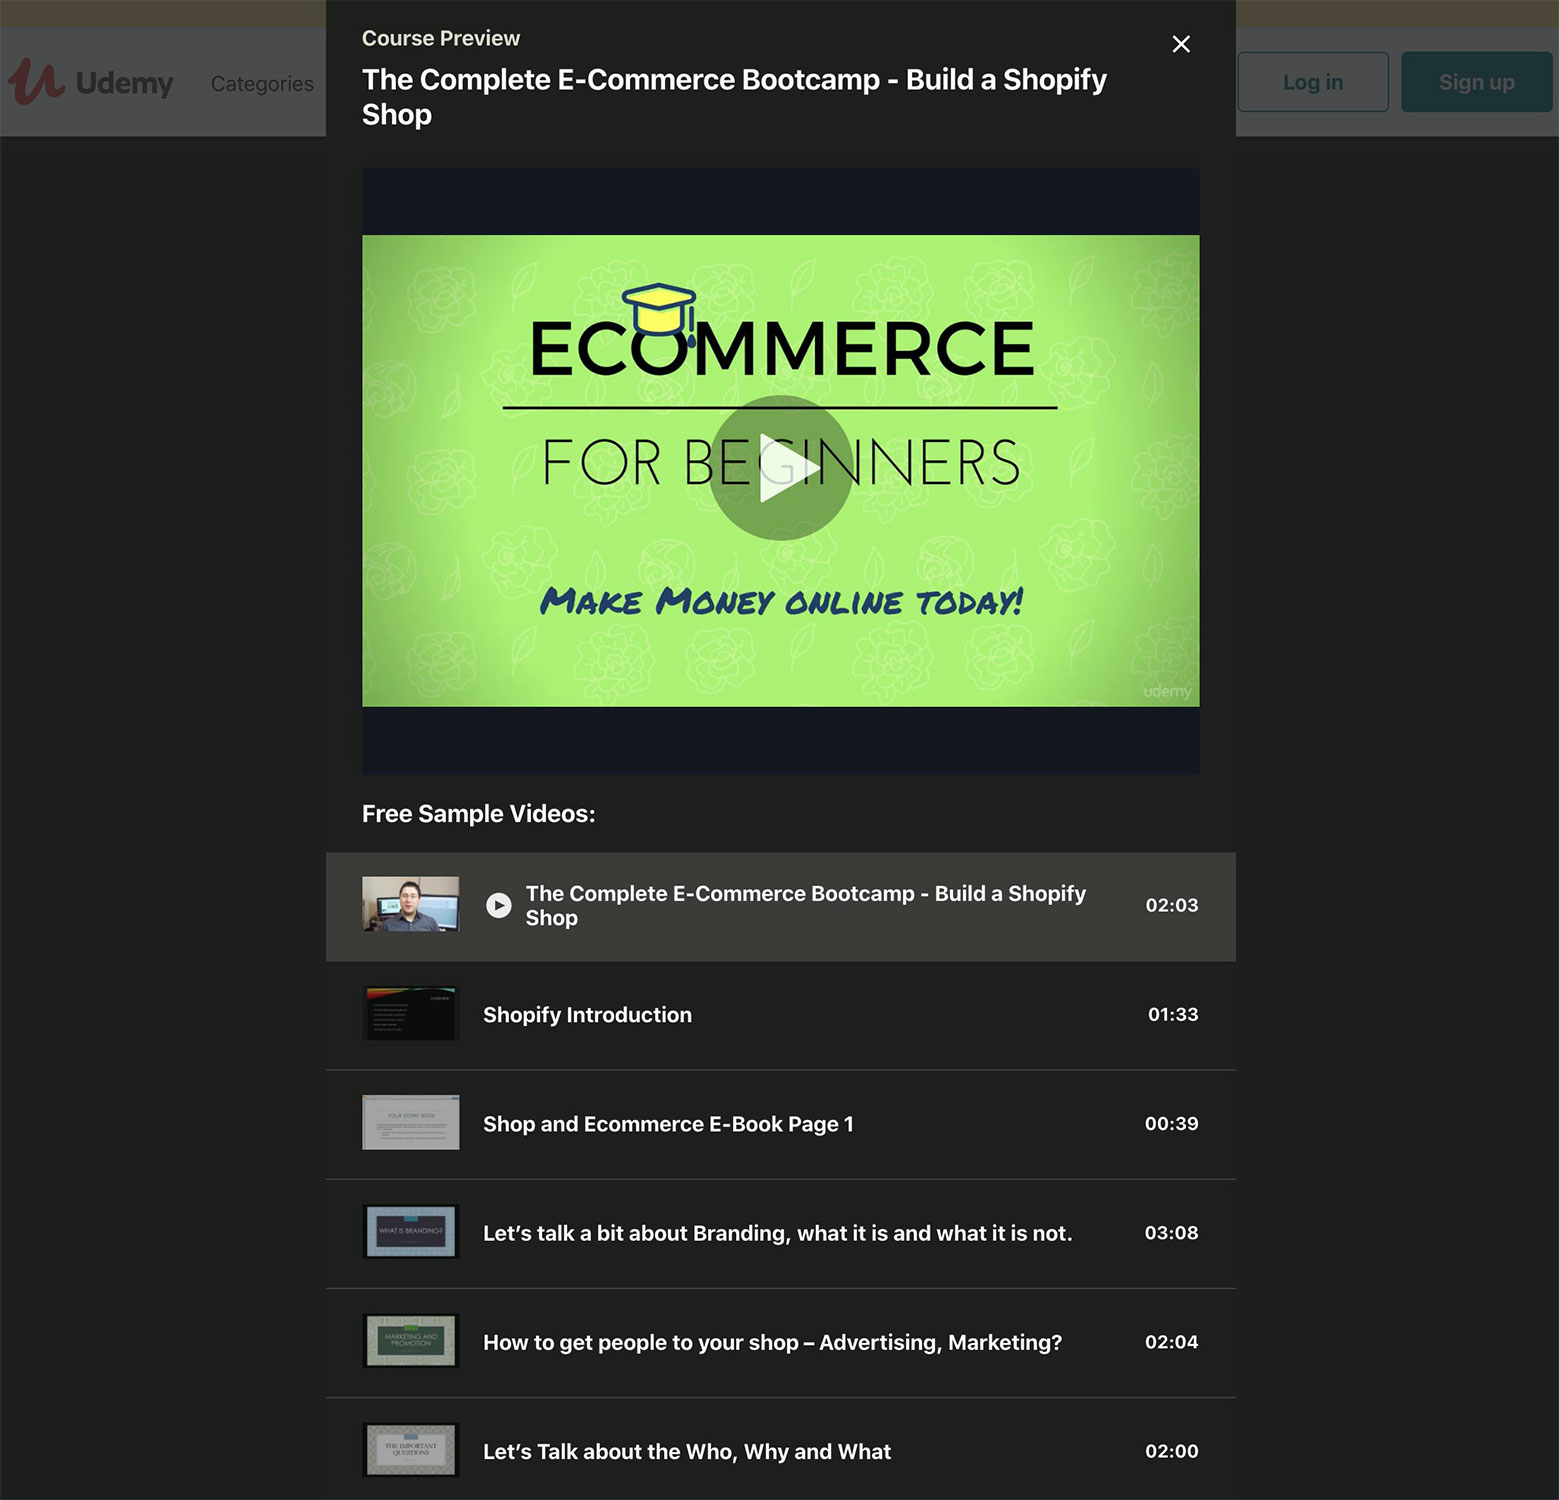 Udemy's eCommerce video courses.